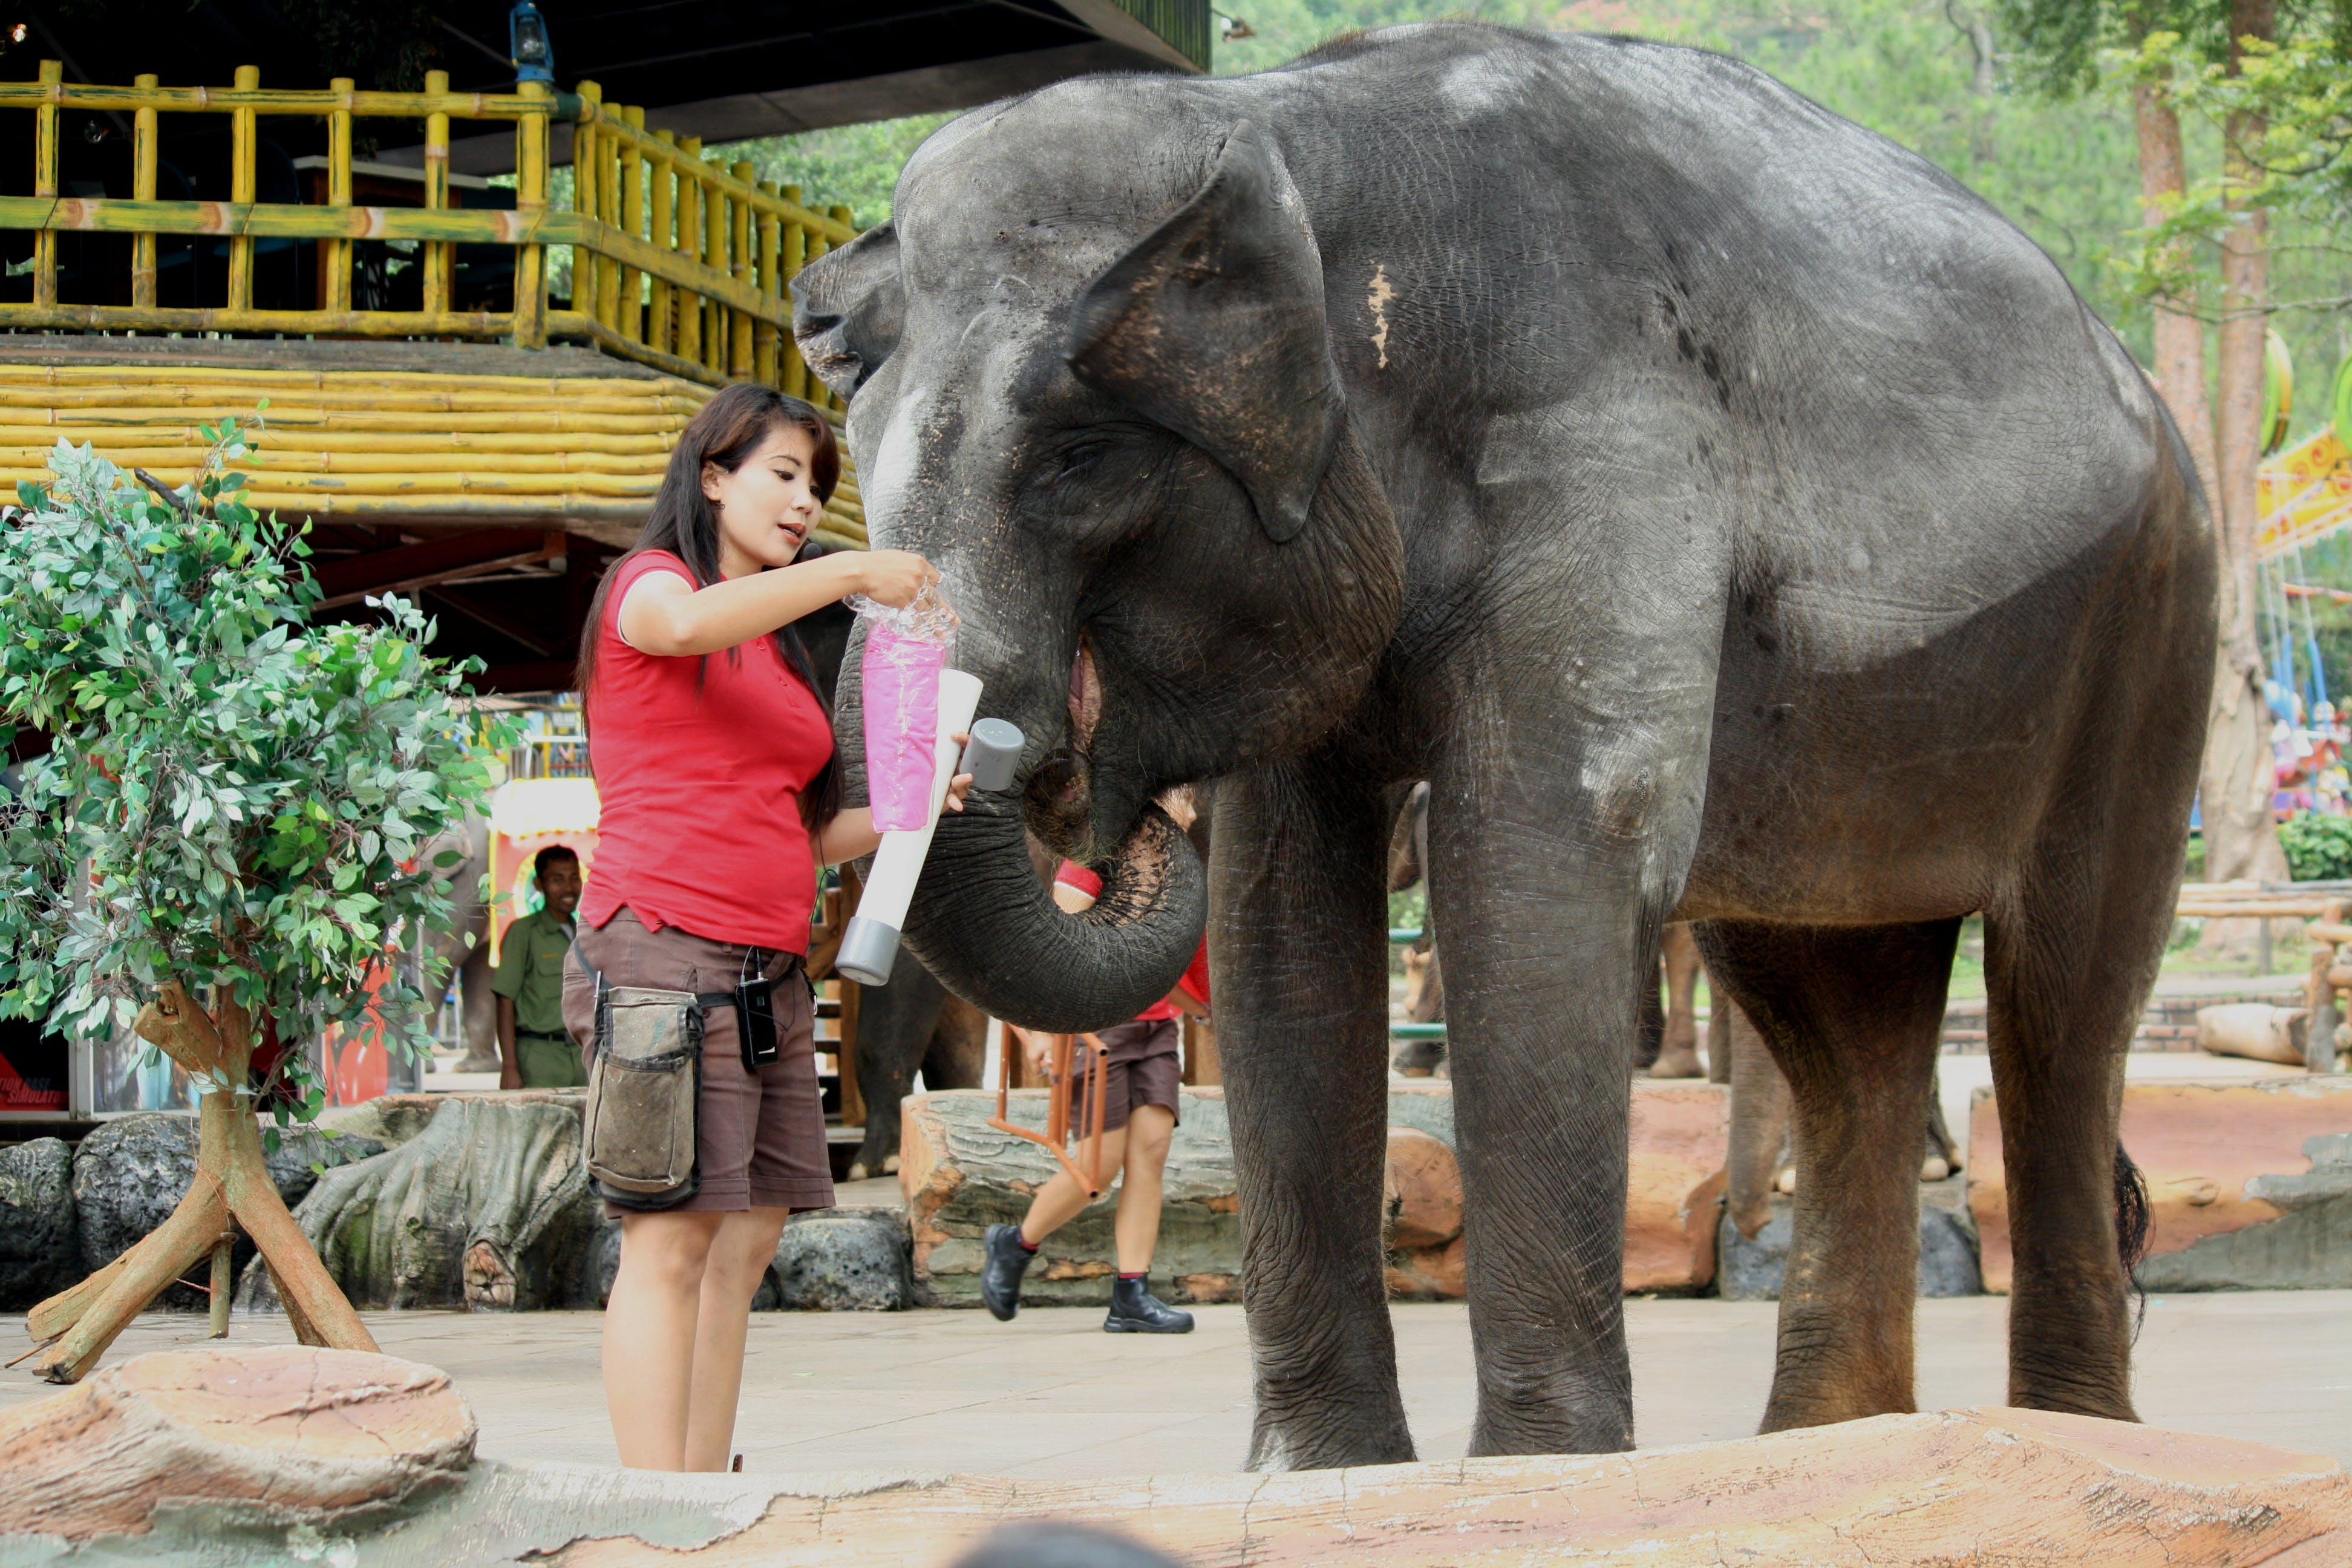 Person Feeding the Elephant